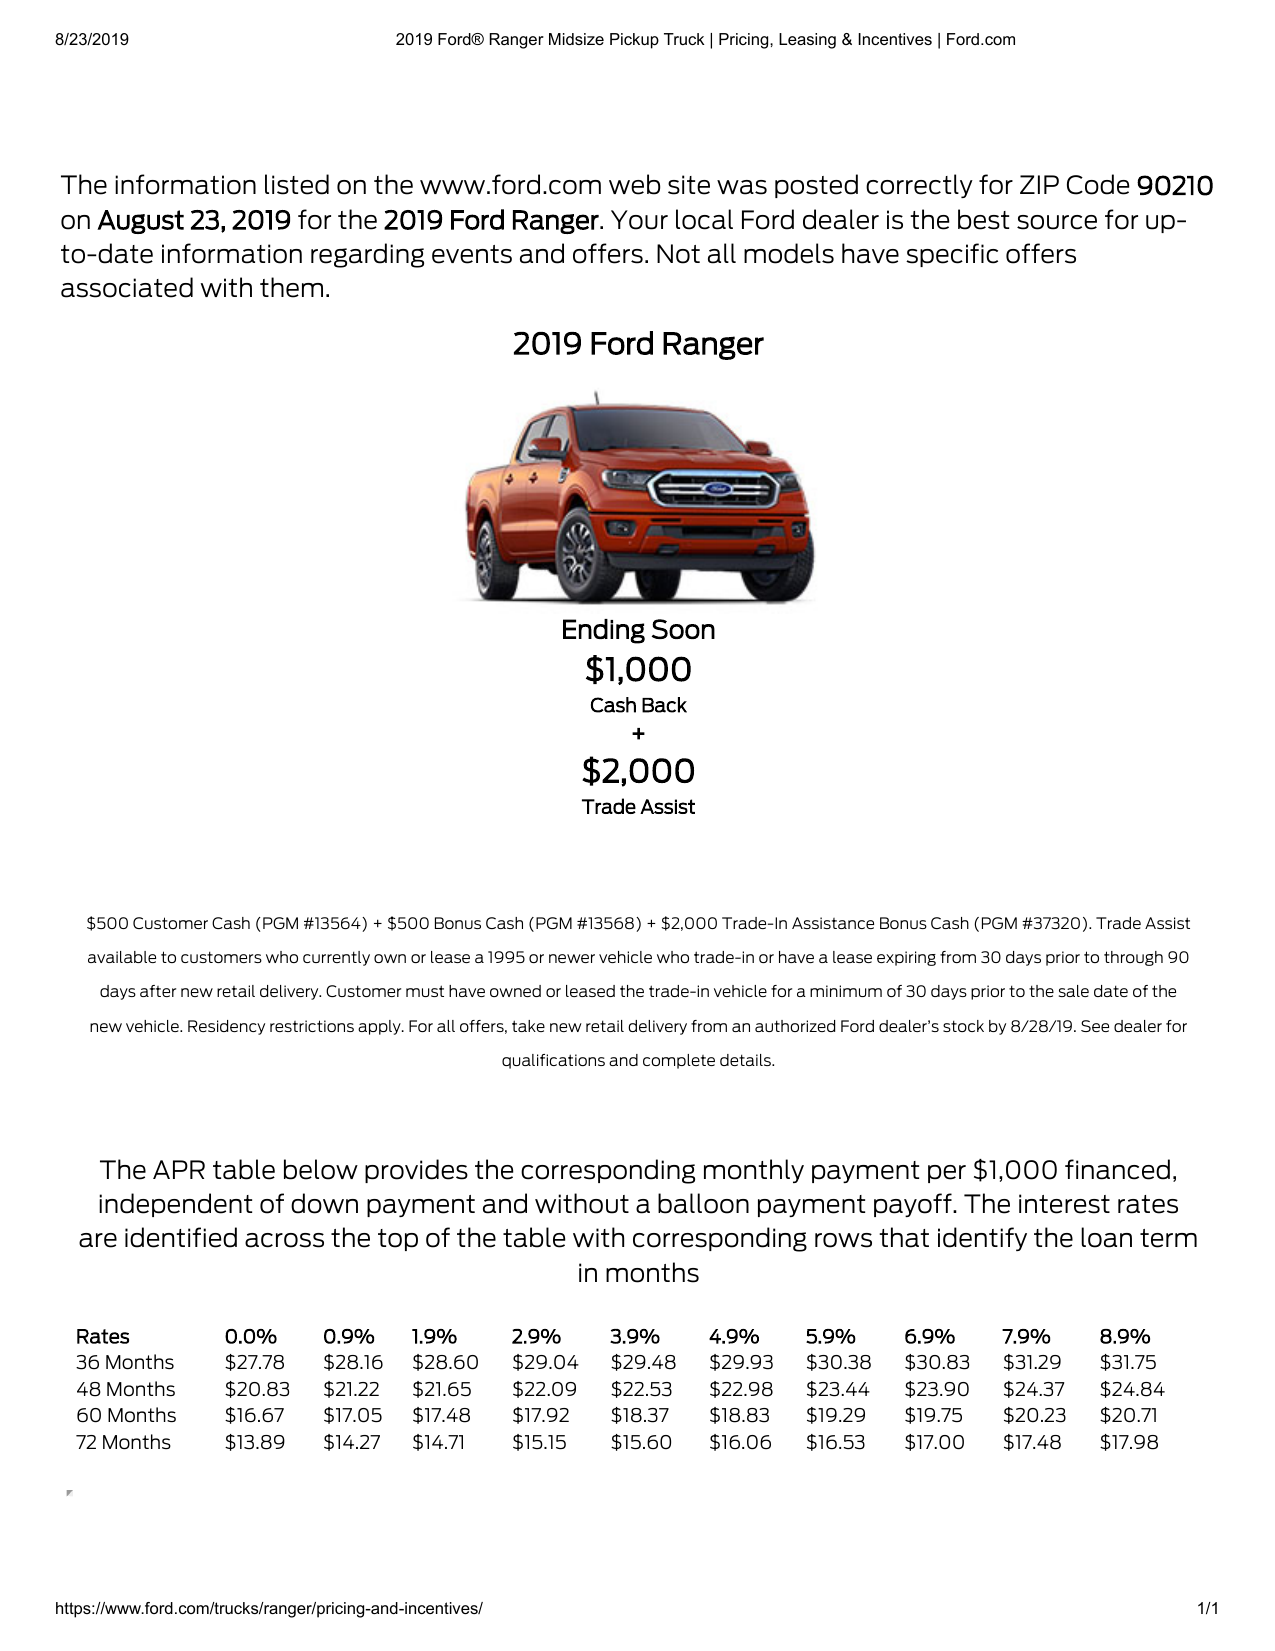 2019 Ford® Ranger Midsize Pickup Truck _ Pricing, Leasing & Incentives _ Ford.com.png